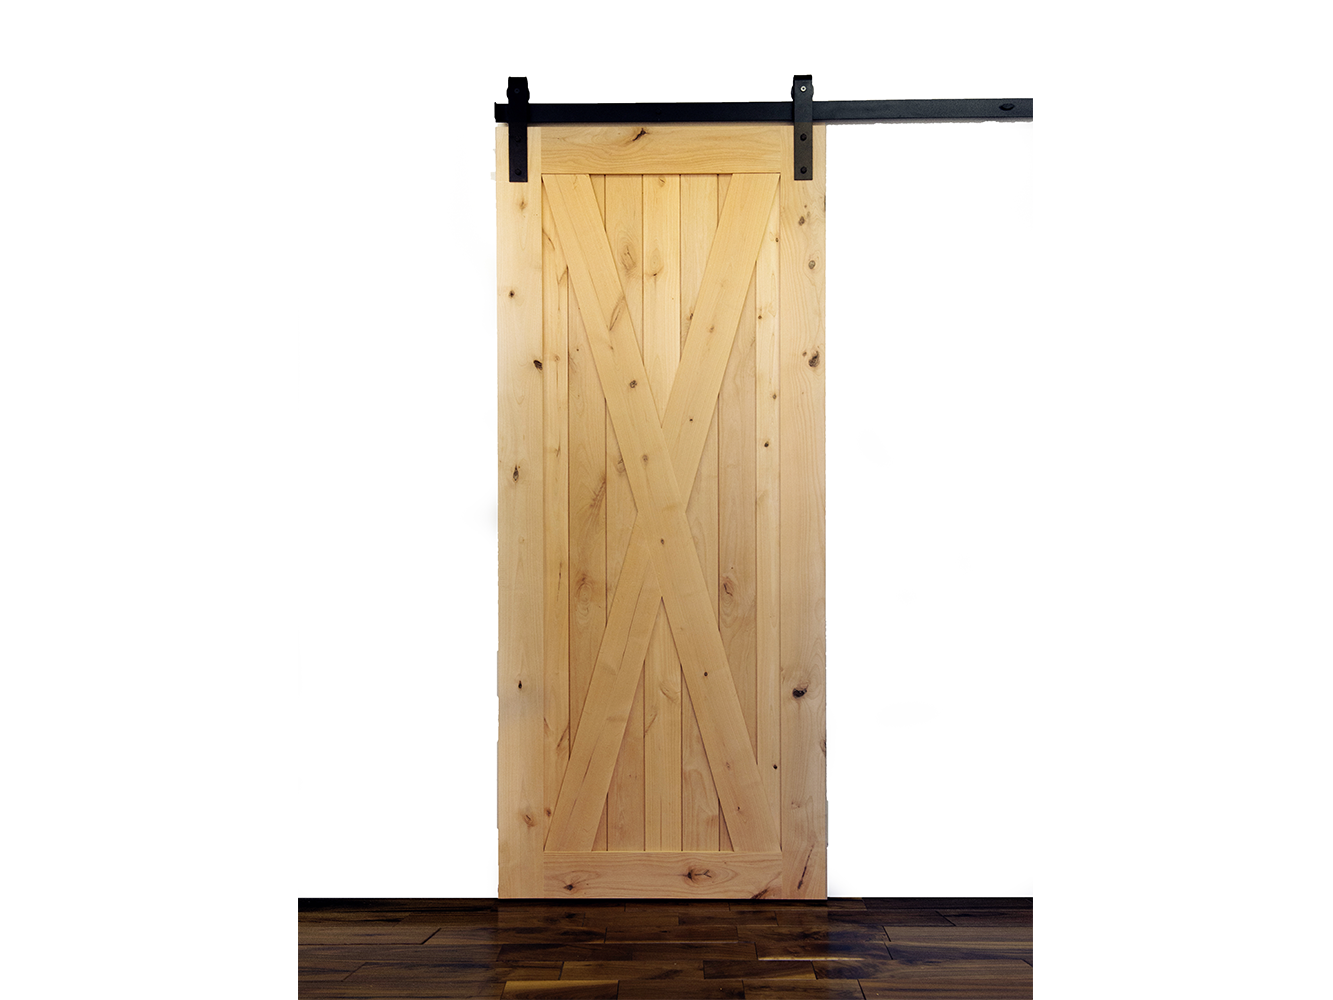 Krosswood Knotty Alder 1 Panel Single X Solid Wood Core Barn Door Slab Barn Door Wood Barn Door Wood Doors Interior